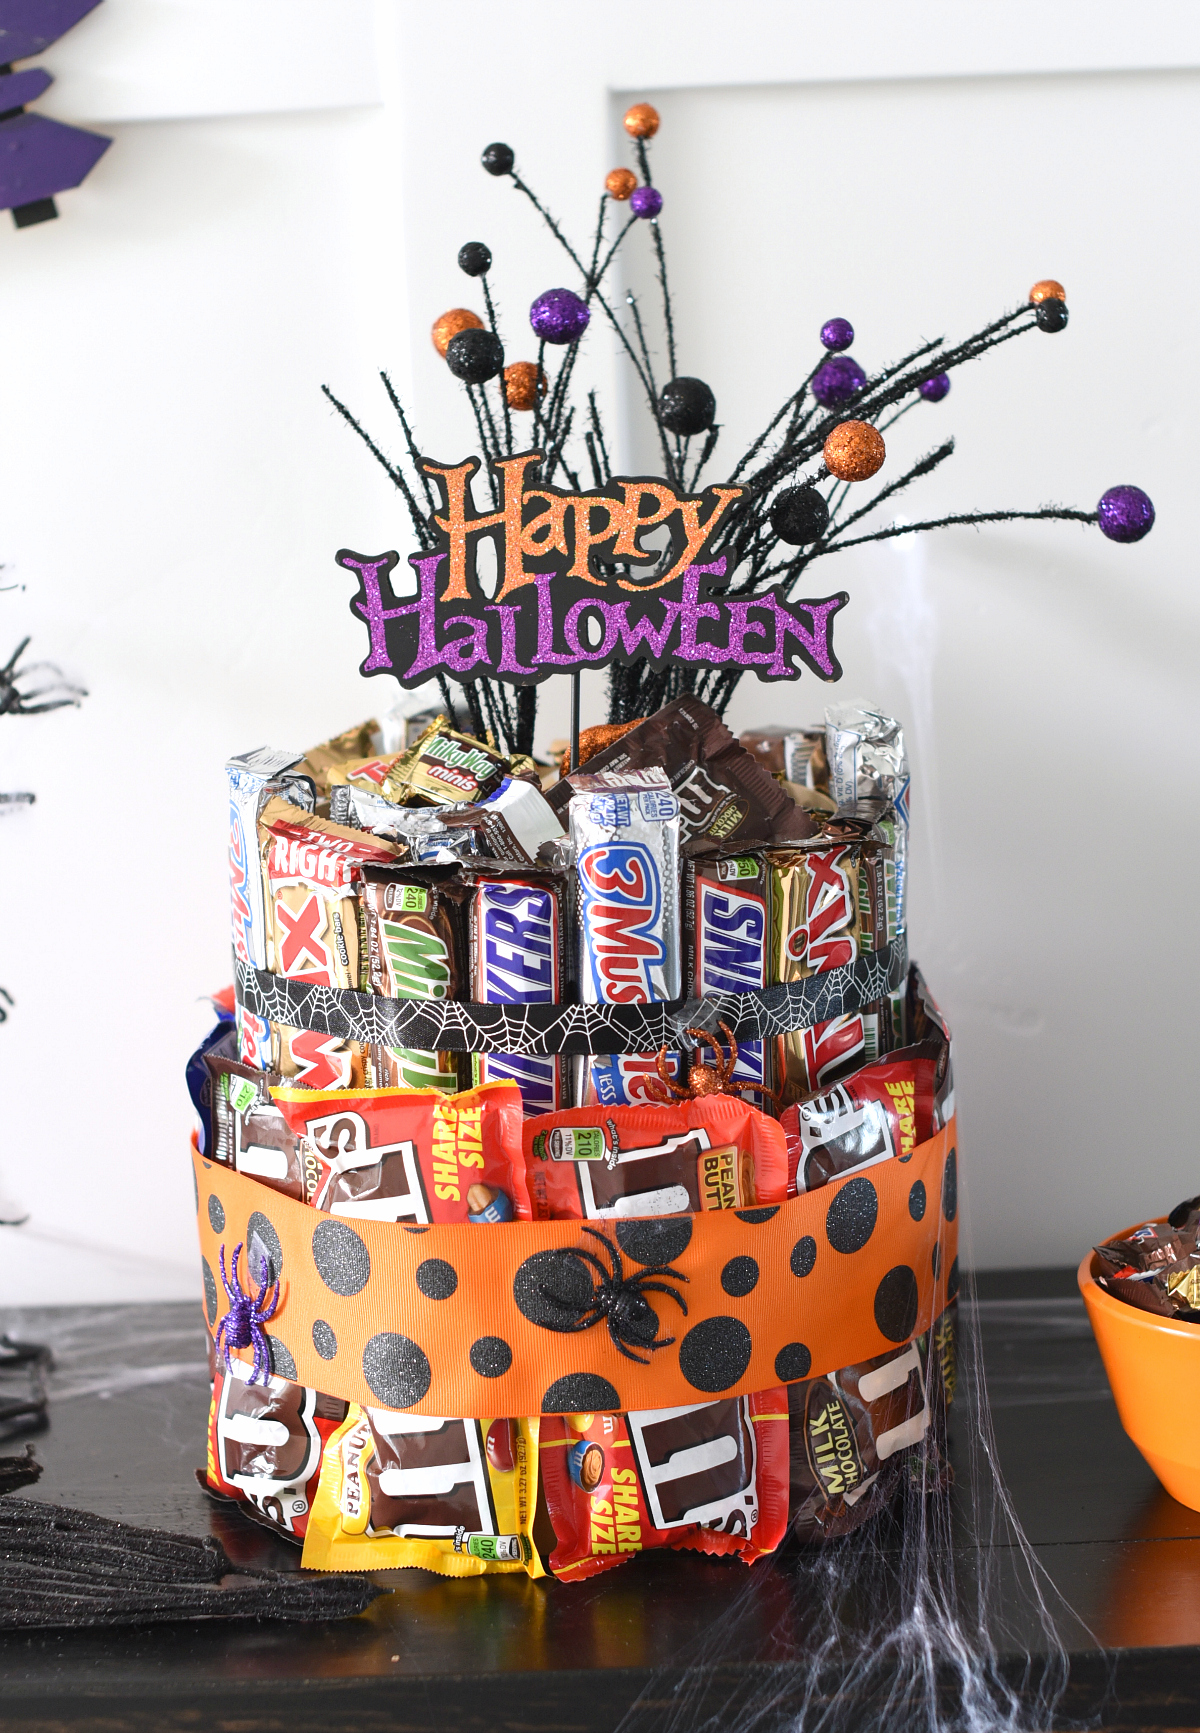 Halloween Candy Cake-Make this cute Halloween candy cake as a centerpiece for your Halloween party or as a gift for a great friend! #Halloween #candy #halloweeparty #partydecor #centerpiece